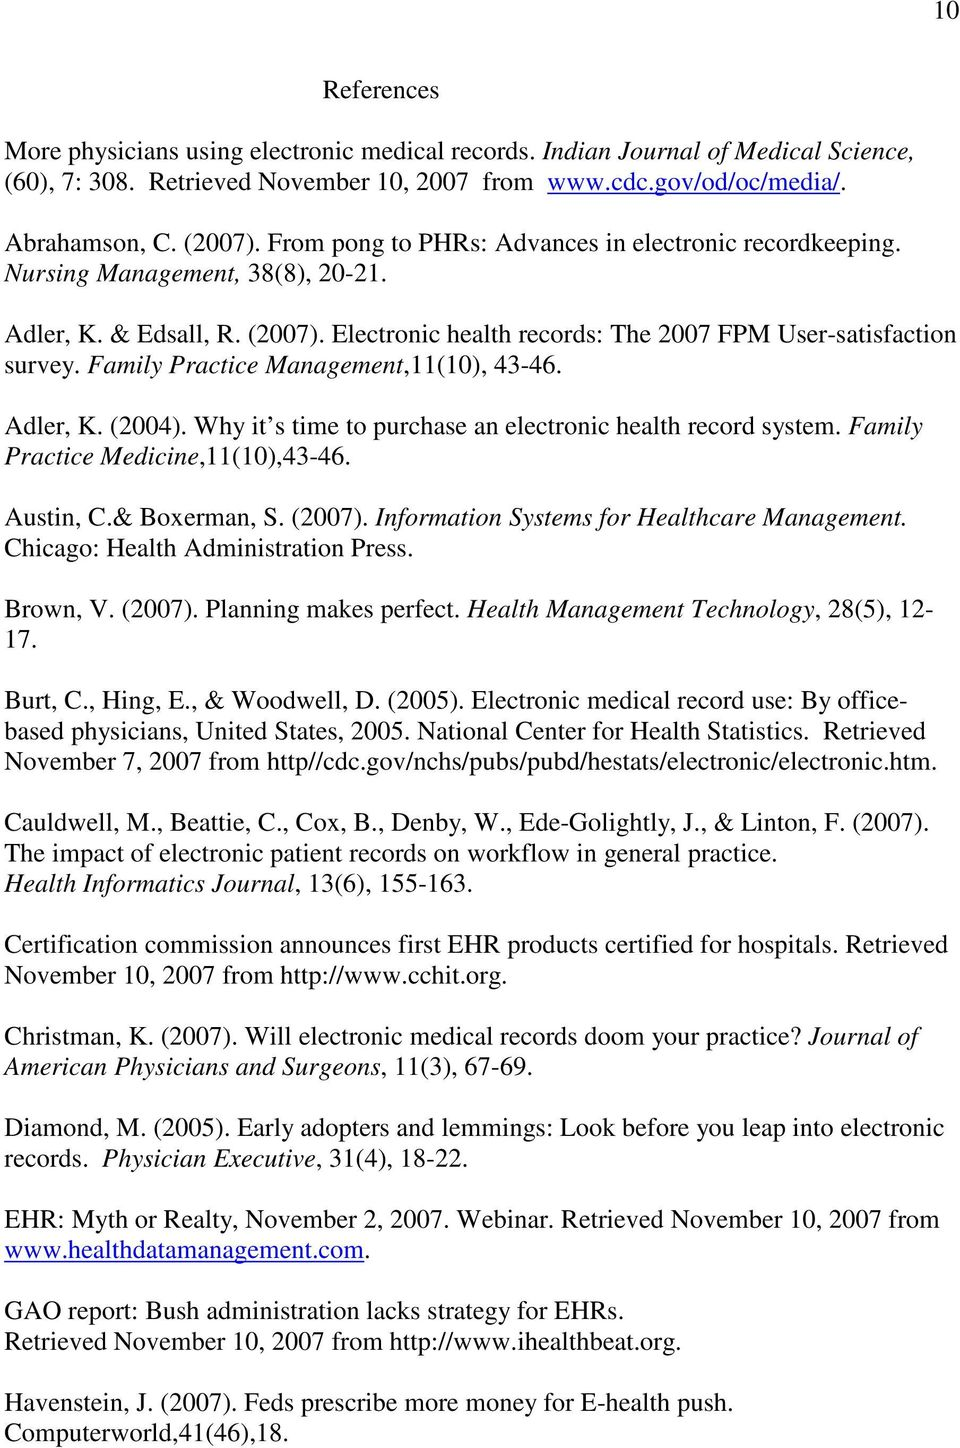 Family Practice Management,11(10), 43-46. Adler, K. (2004). Why it s time to purchase an electronic health record system. Family Practice Medicine,11(10),43-46. Austin, C.& Boxerman, S. (2007).